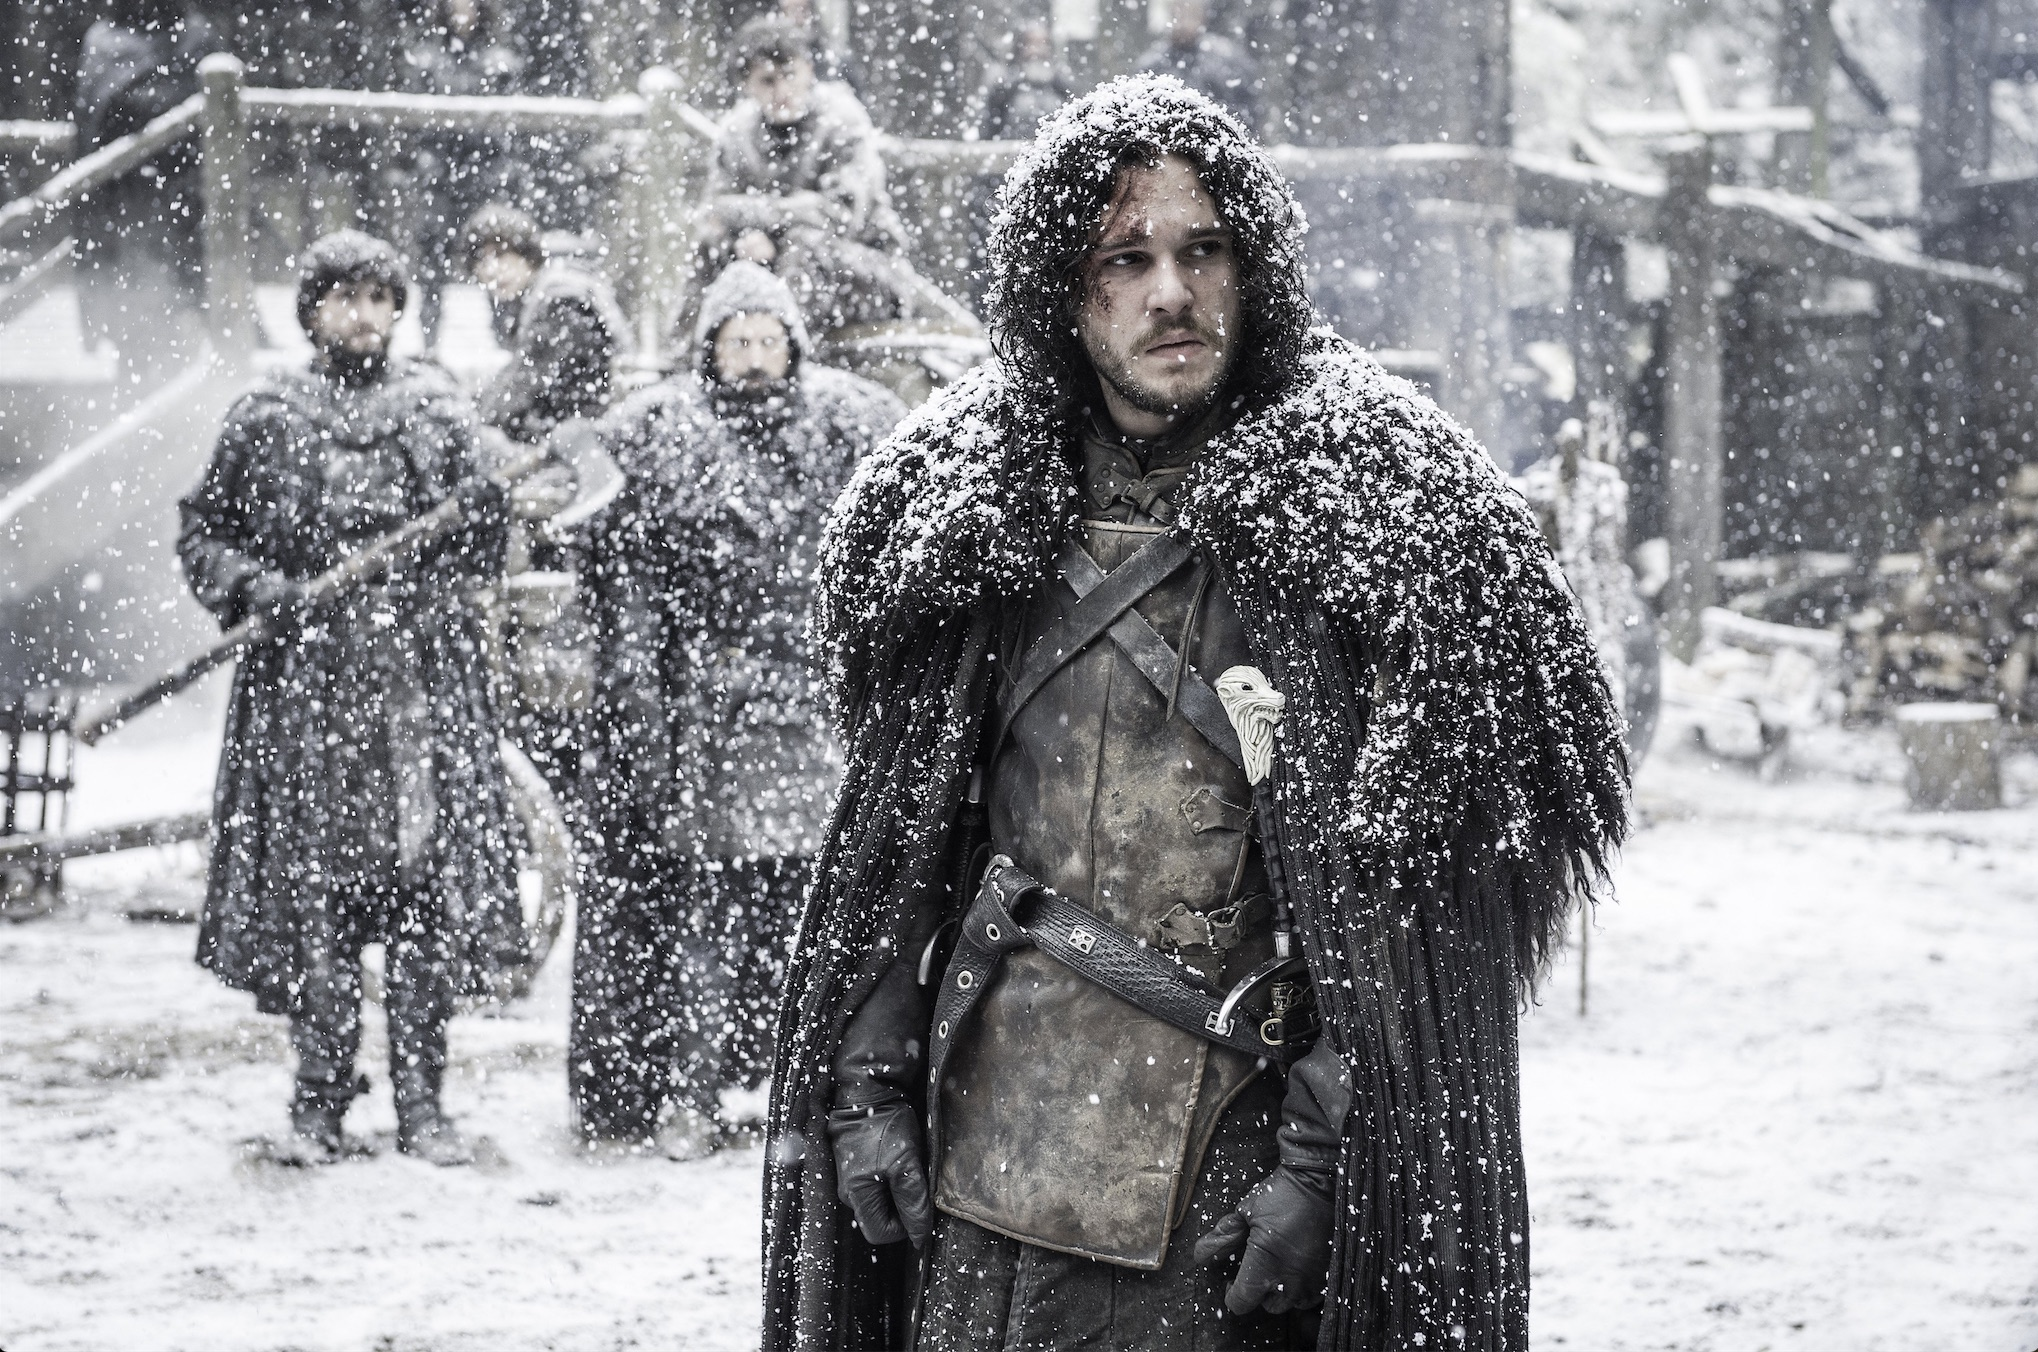 """There may be fewer episodes of """"Game of Thrones"""" left than we originally thought"""